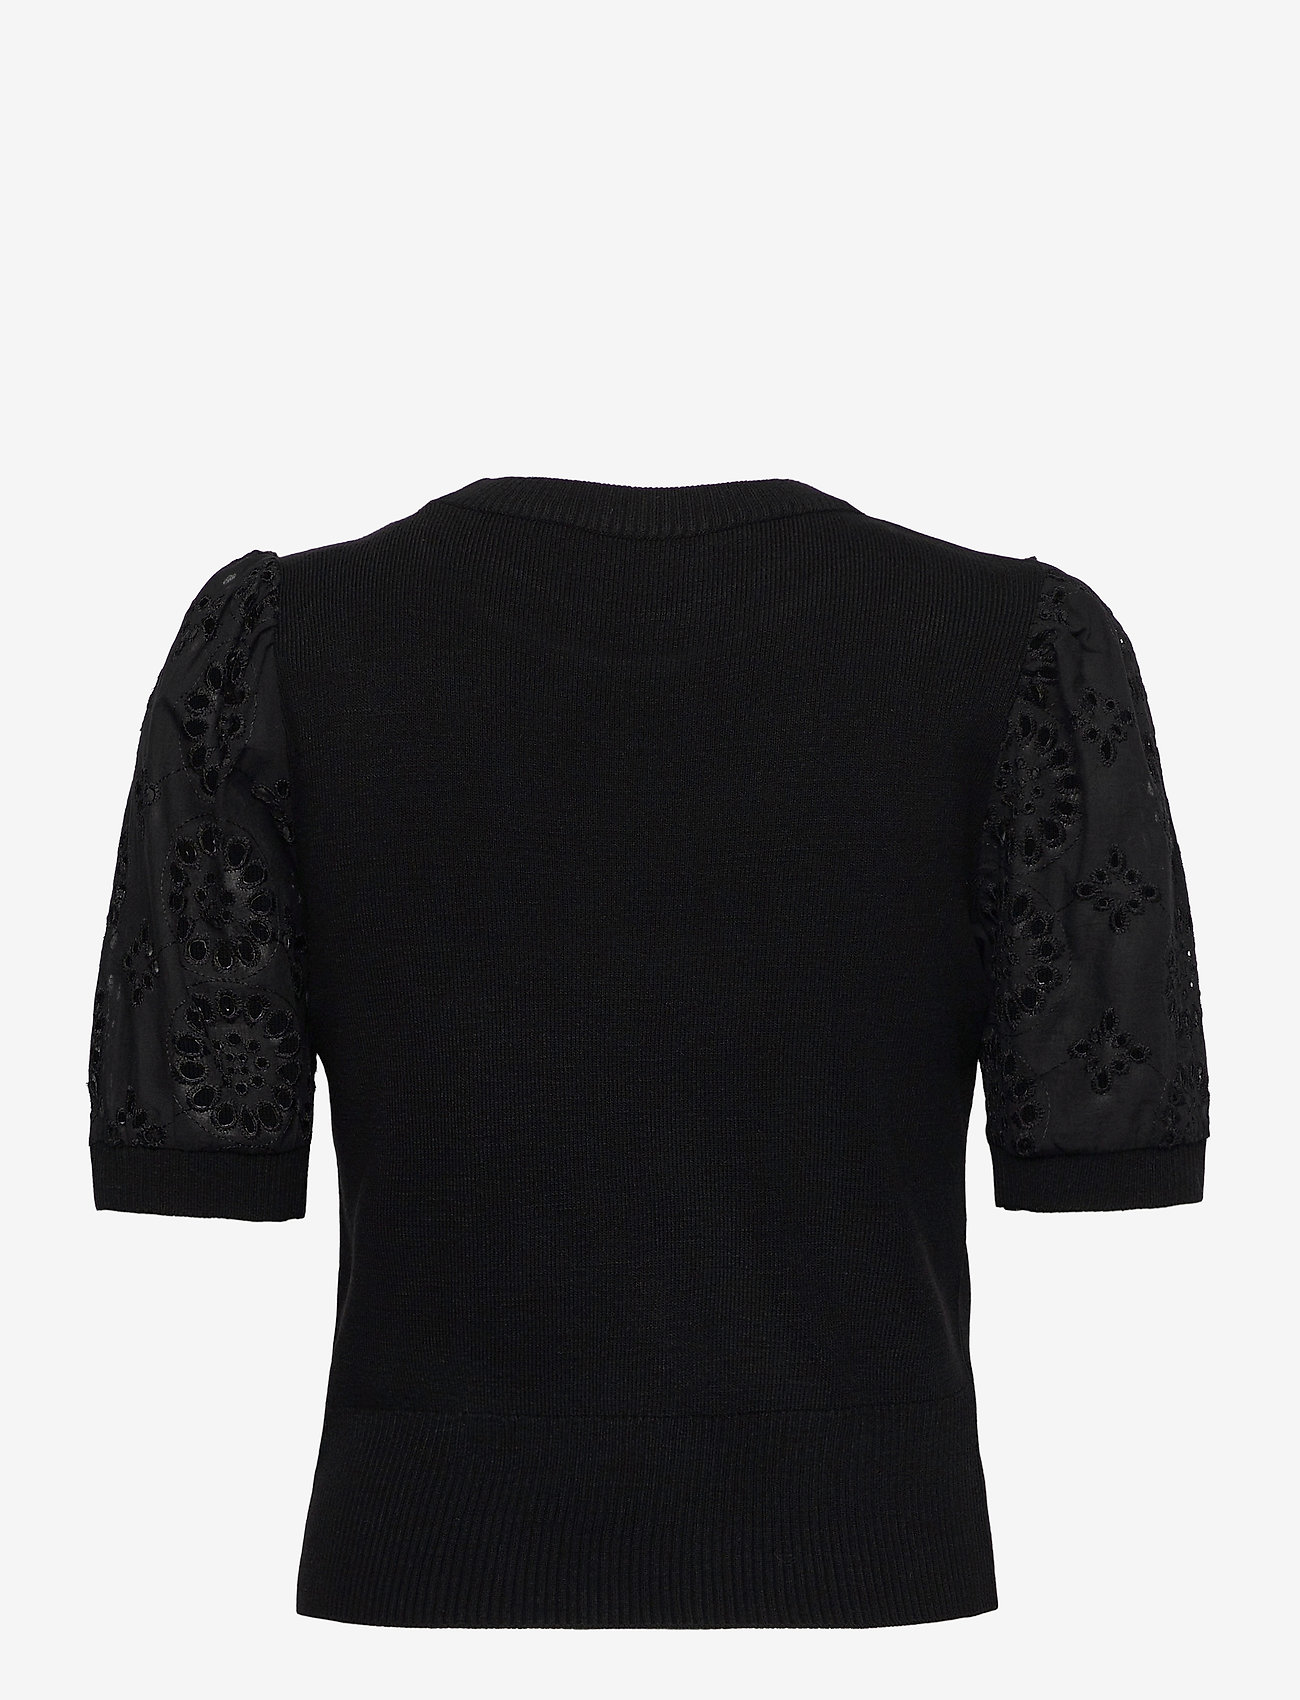 Vero Moda - VMNEWFLOWERS SS O-NECK BLOUSE - stickade toppar - black - 1